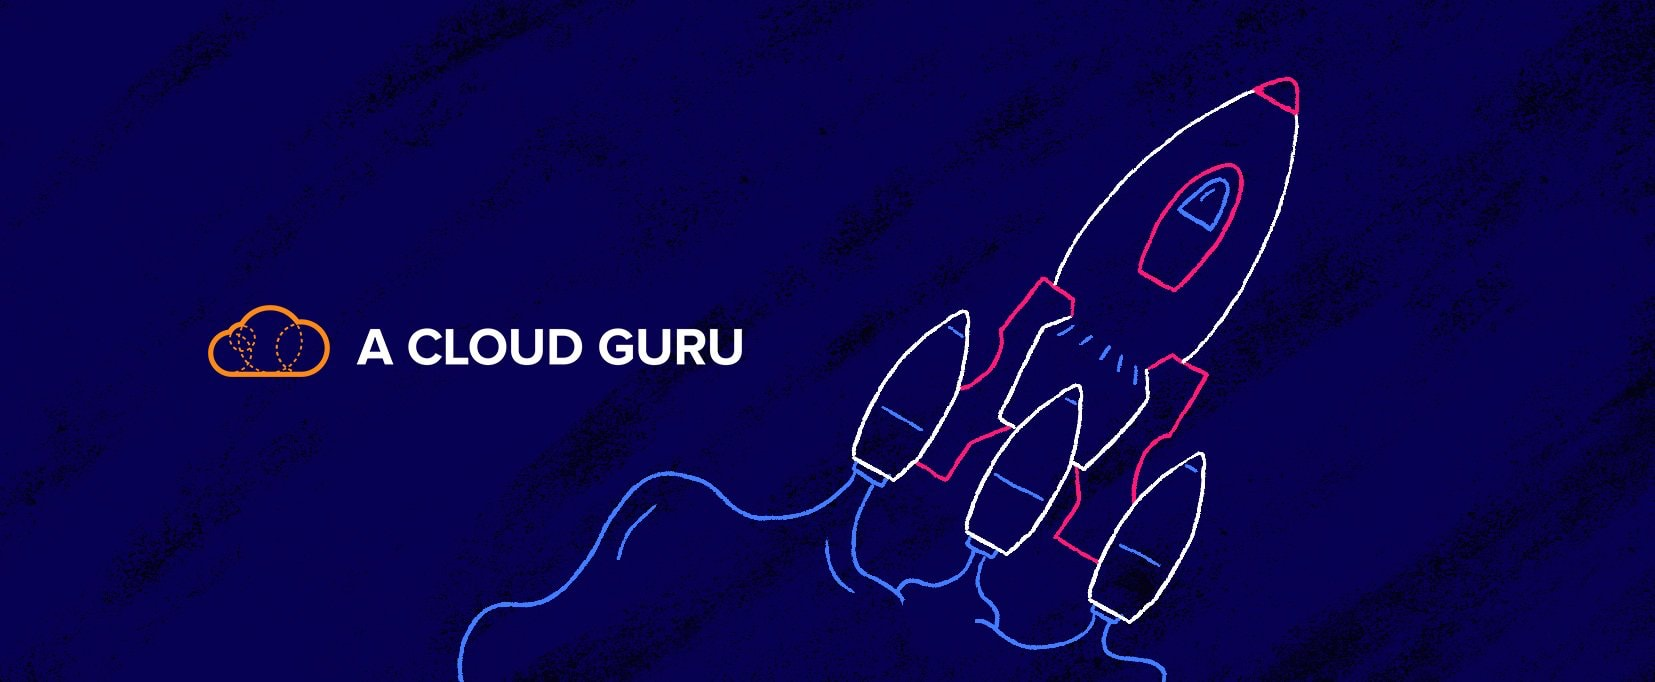 a cloud guru rocket